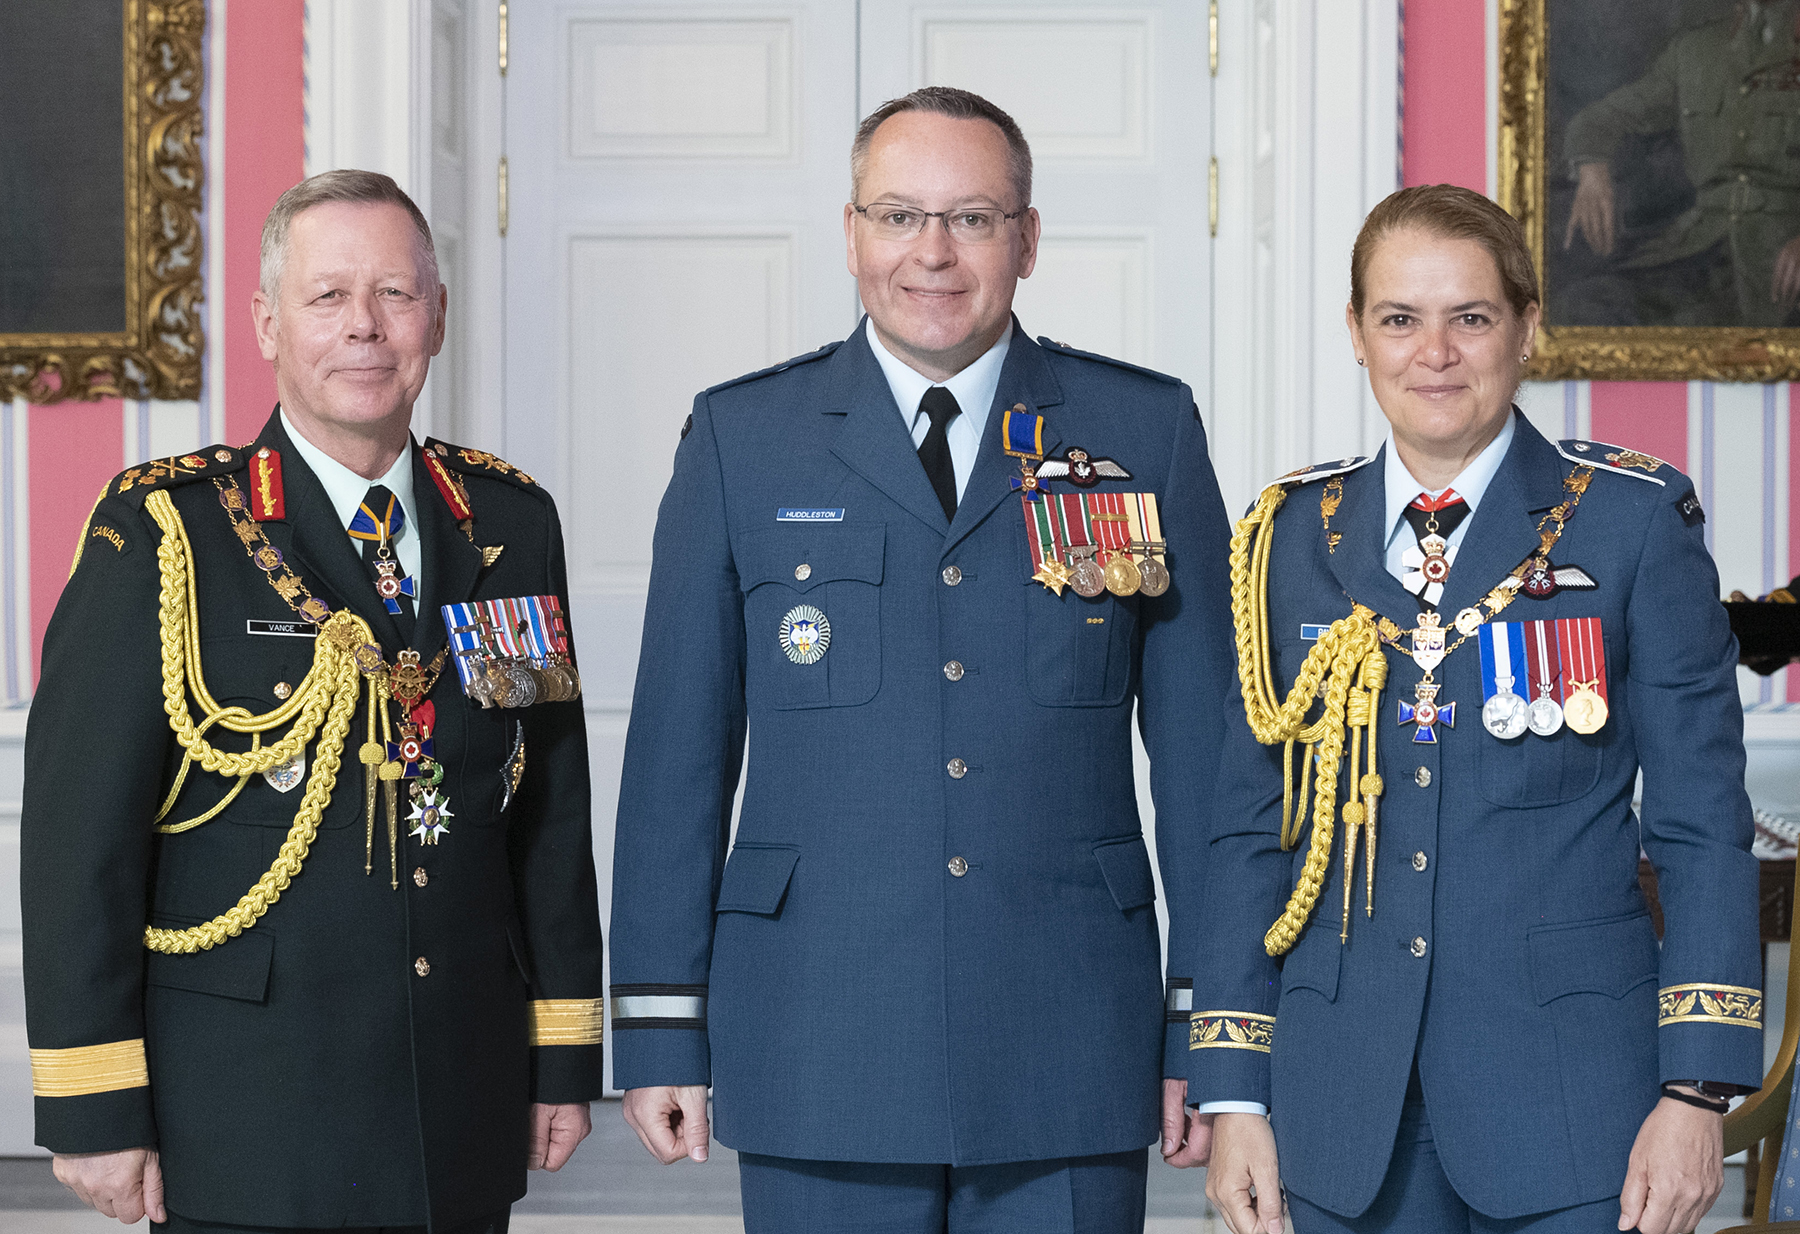 Brigadier-General Iain Stewart Huddleston, O.M.M., C.D. (centre) stands with Governor-General Julie Payette and Chief of the Defence Staff General Jonathan Vance after receiving the Officer insignia of the Order of Military Merit from the Governor General. PHOTO: Sergeant Johanie Maheu, Rideau Hall, © OSGG, GG05-2019-0118-015